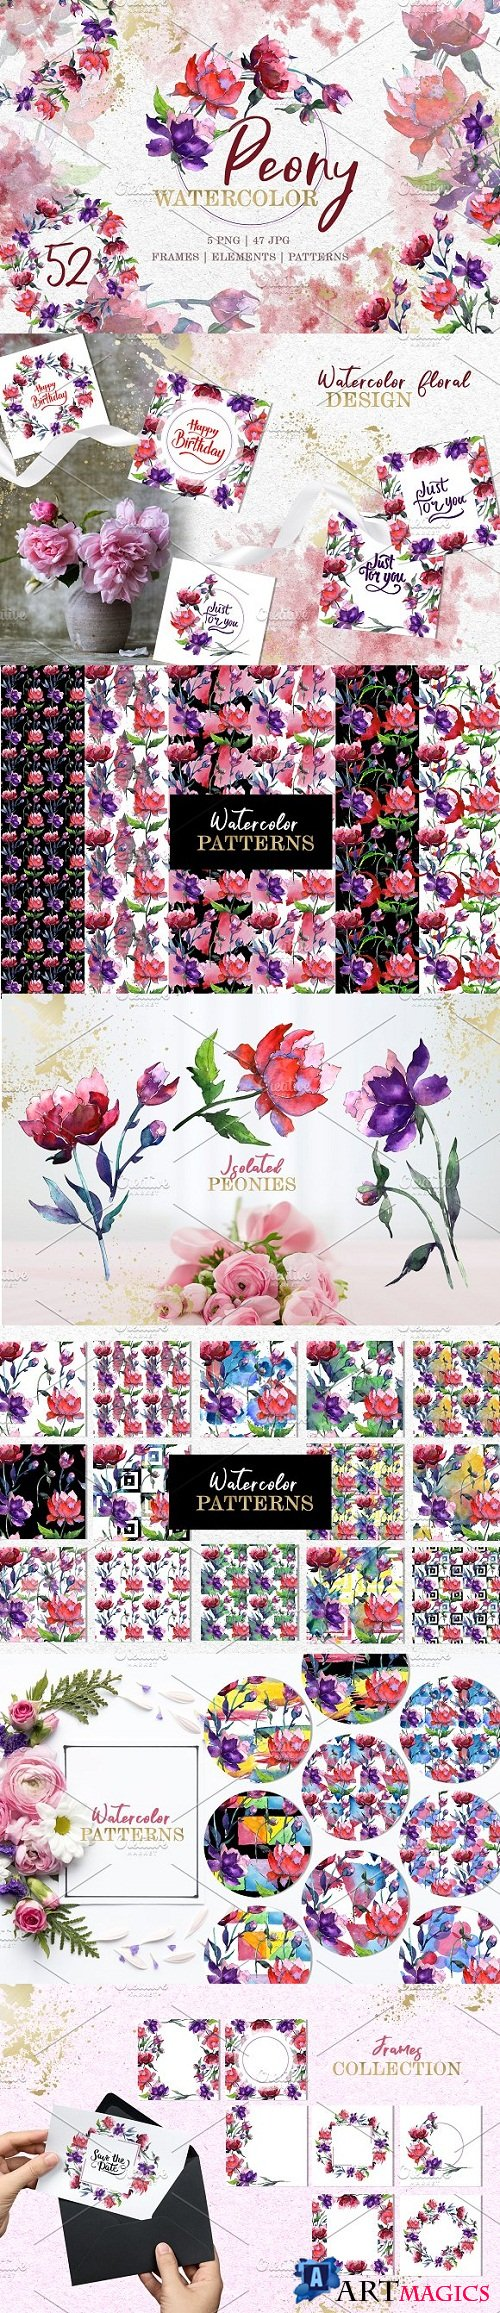 Peony Tenderness Watercolor png - 3507568